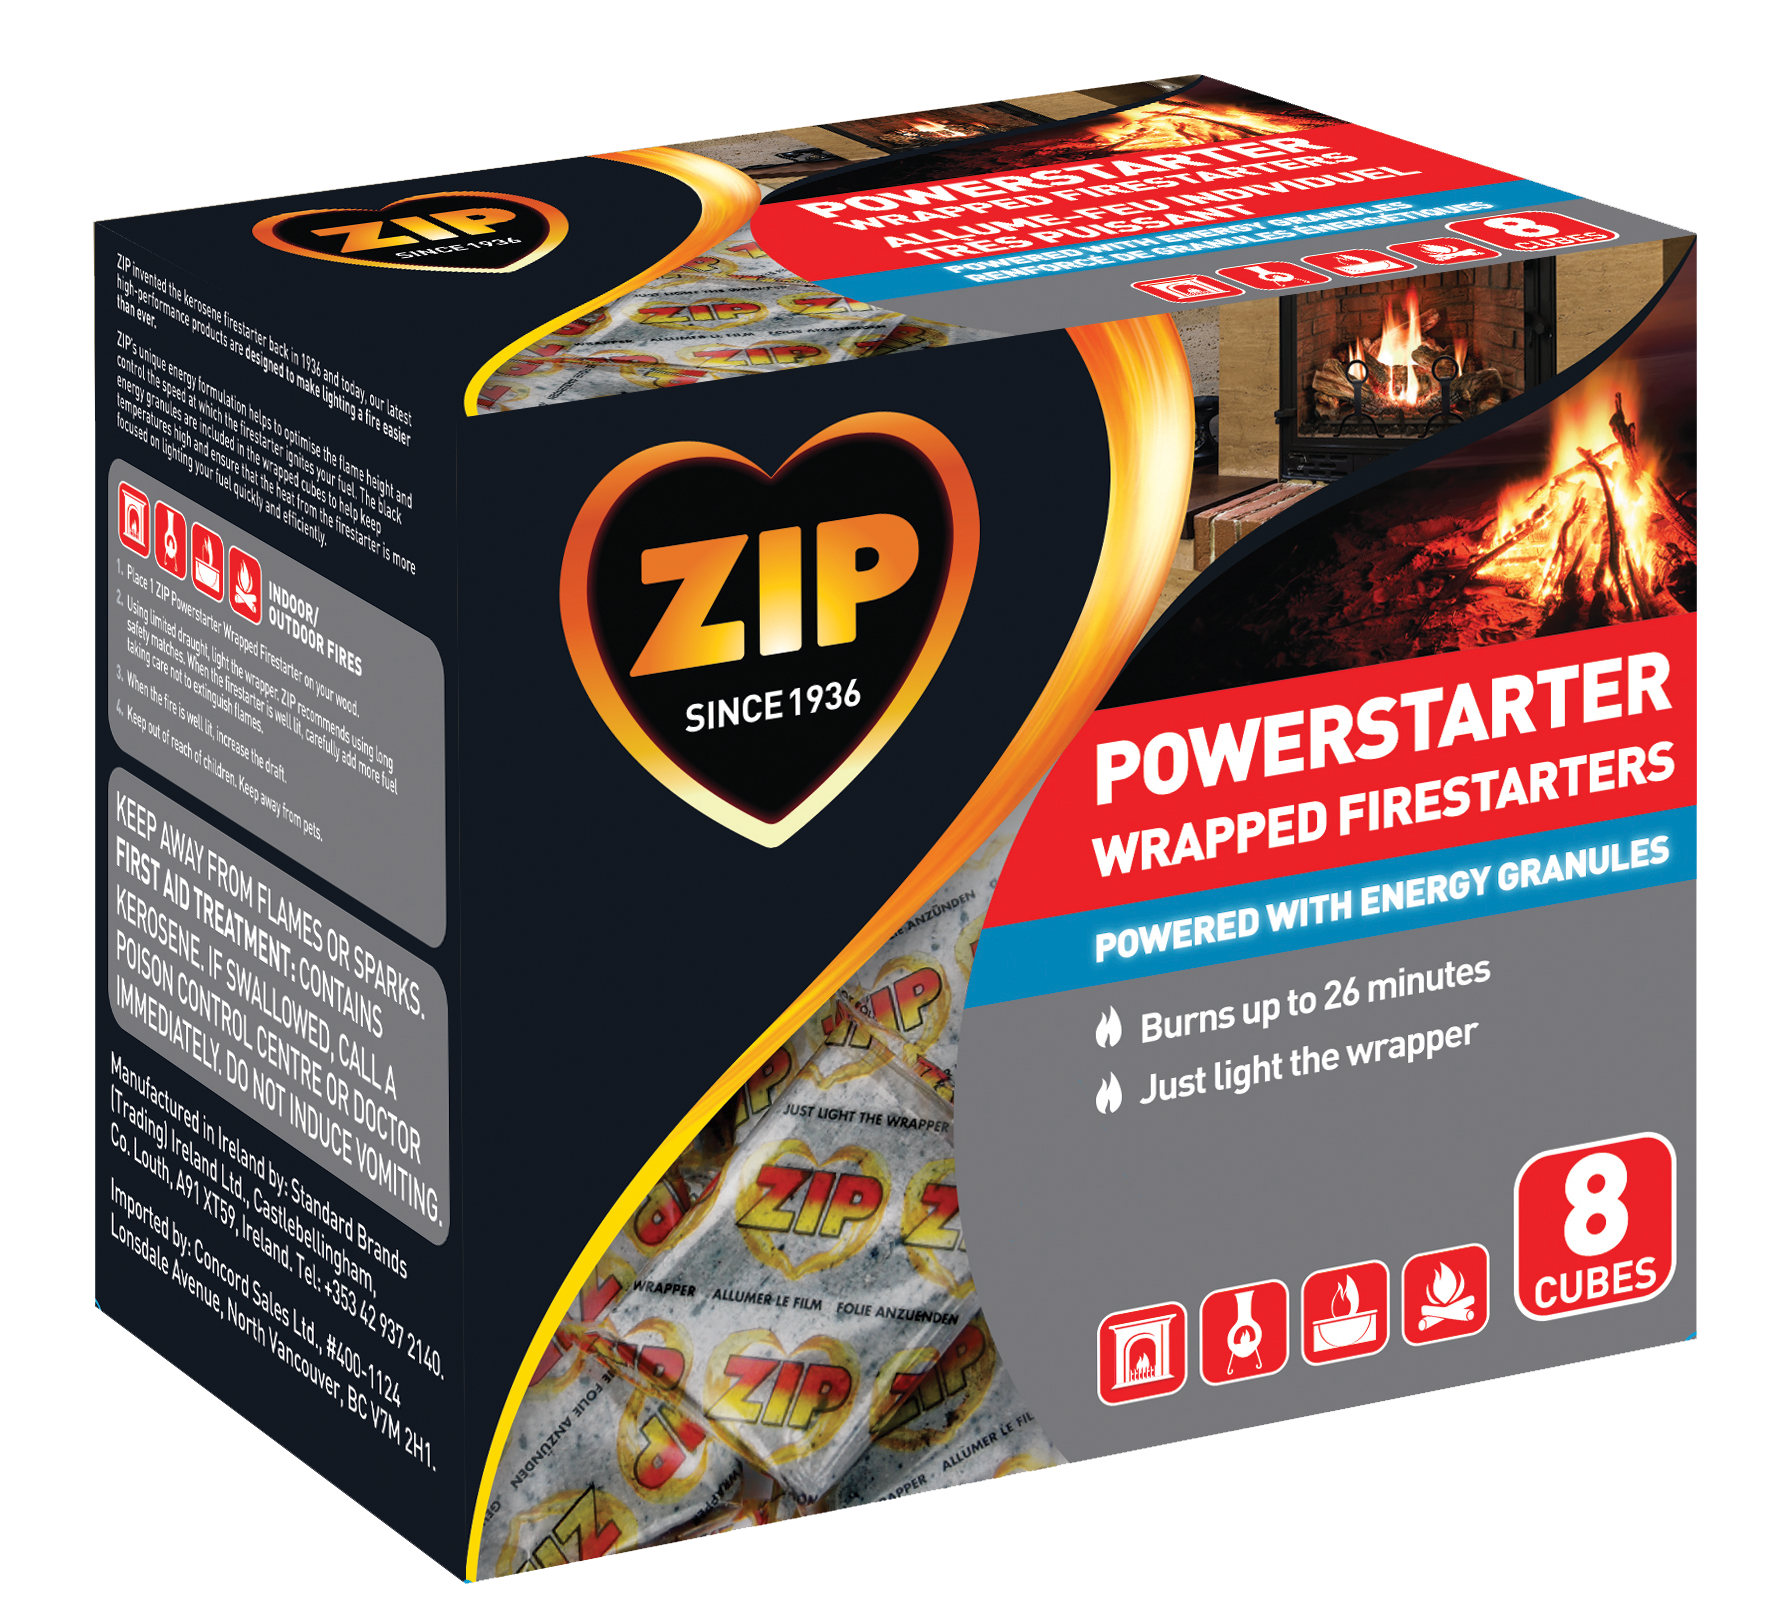 Zip Powerstarter Wrapped Firestarter